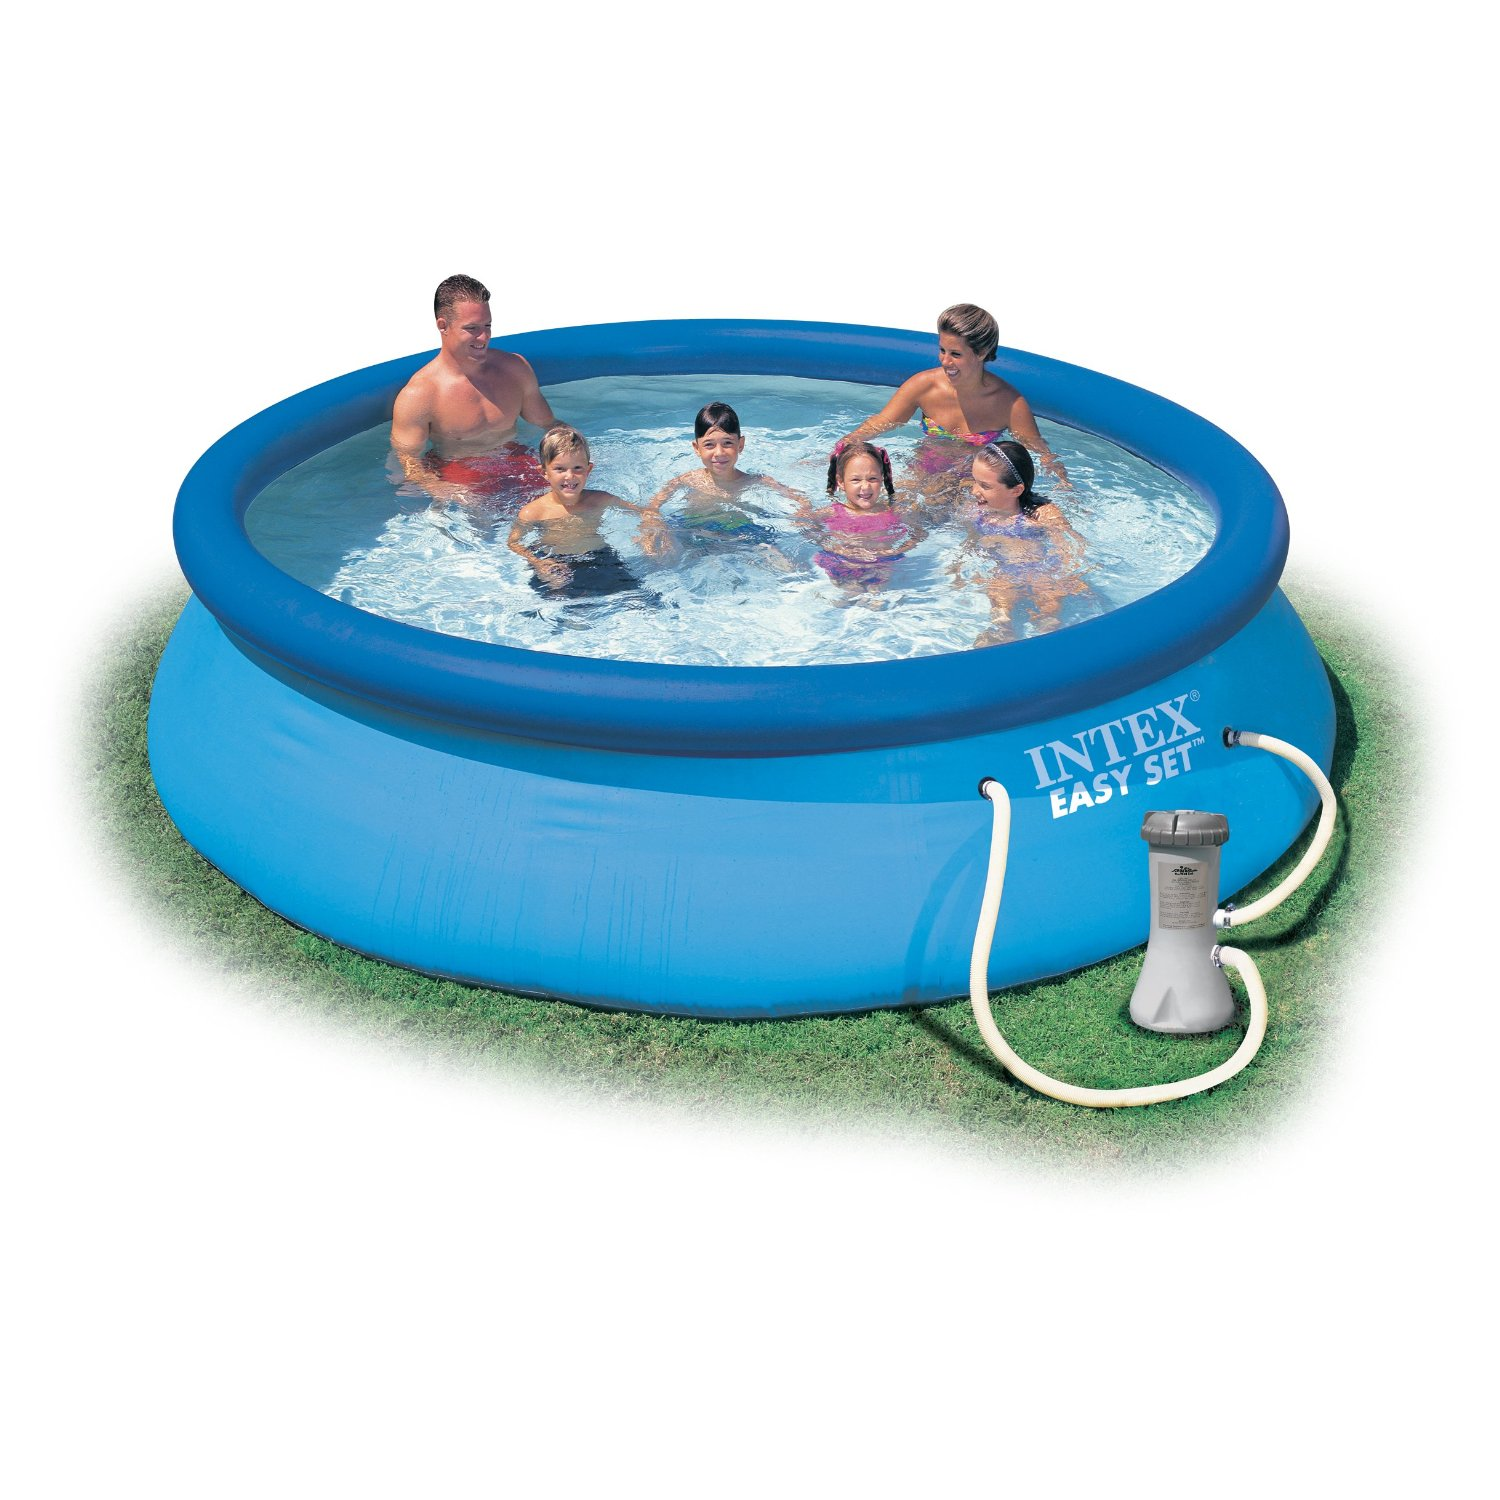 Easy Pool Pflege Pool Mit Filteranlage Quick Up Pool 457 X 91cm Fast Set